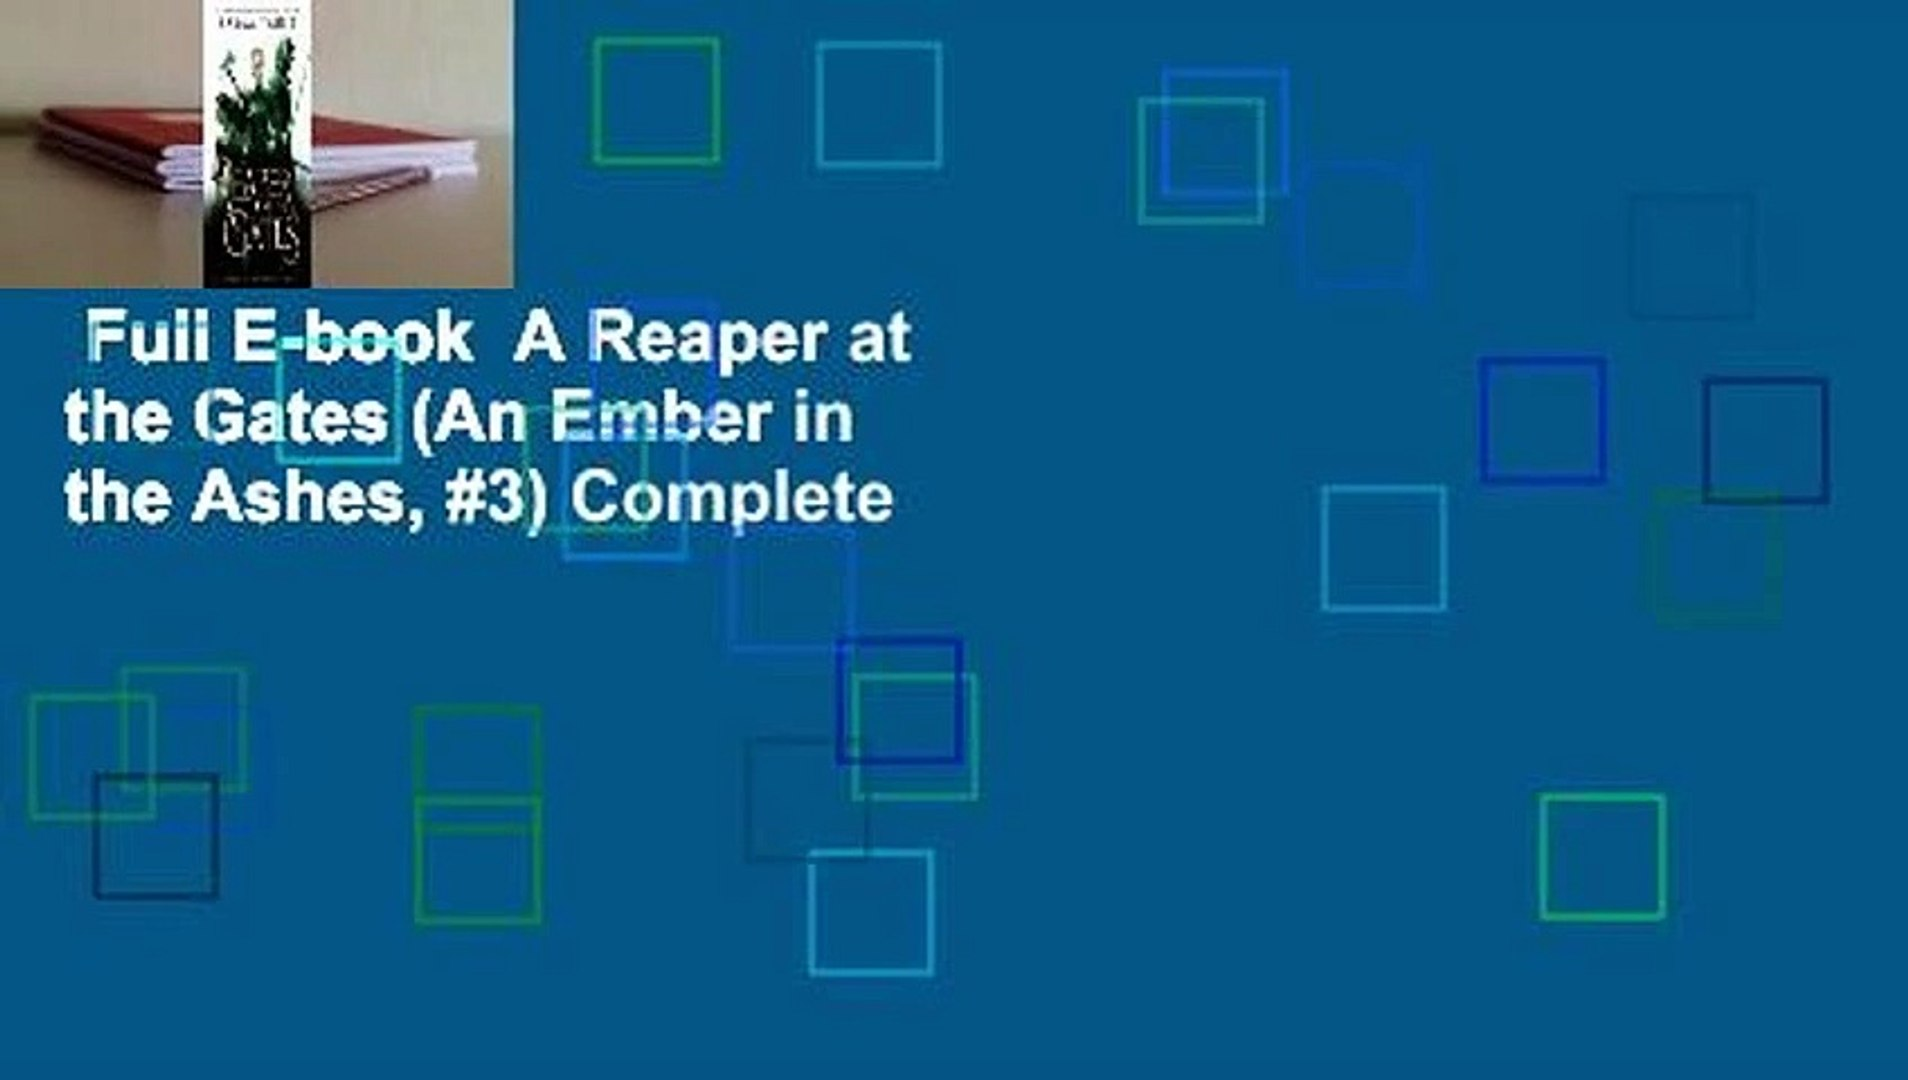 Full E-book  A Reaper at the Gates (An Ember in the Ashes, #3) Complete